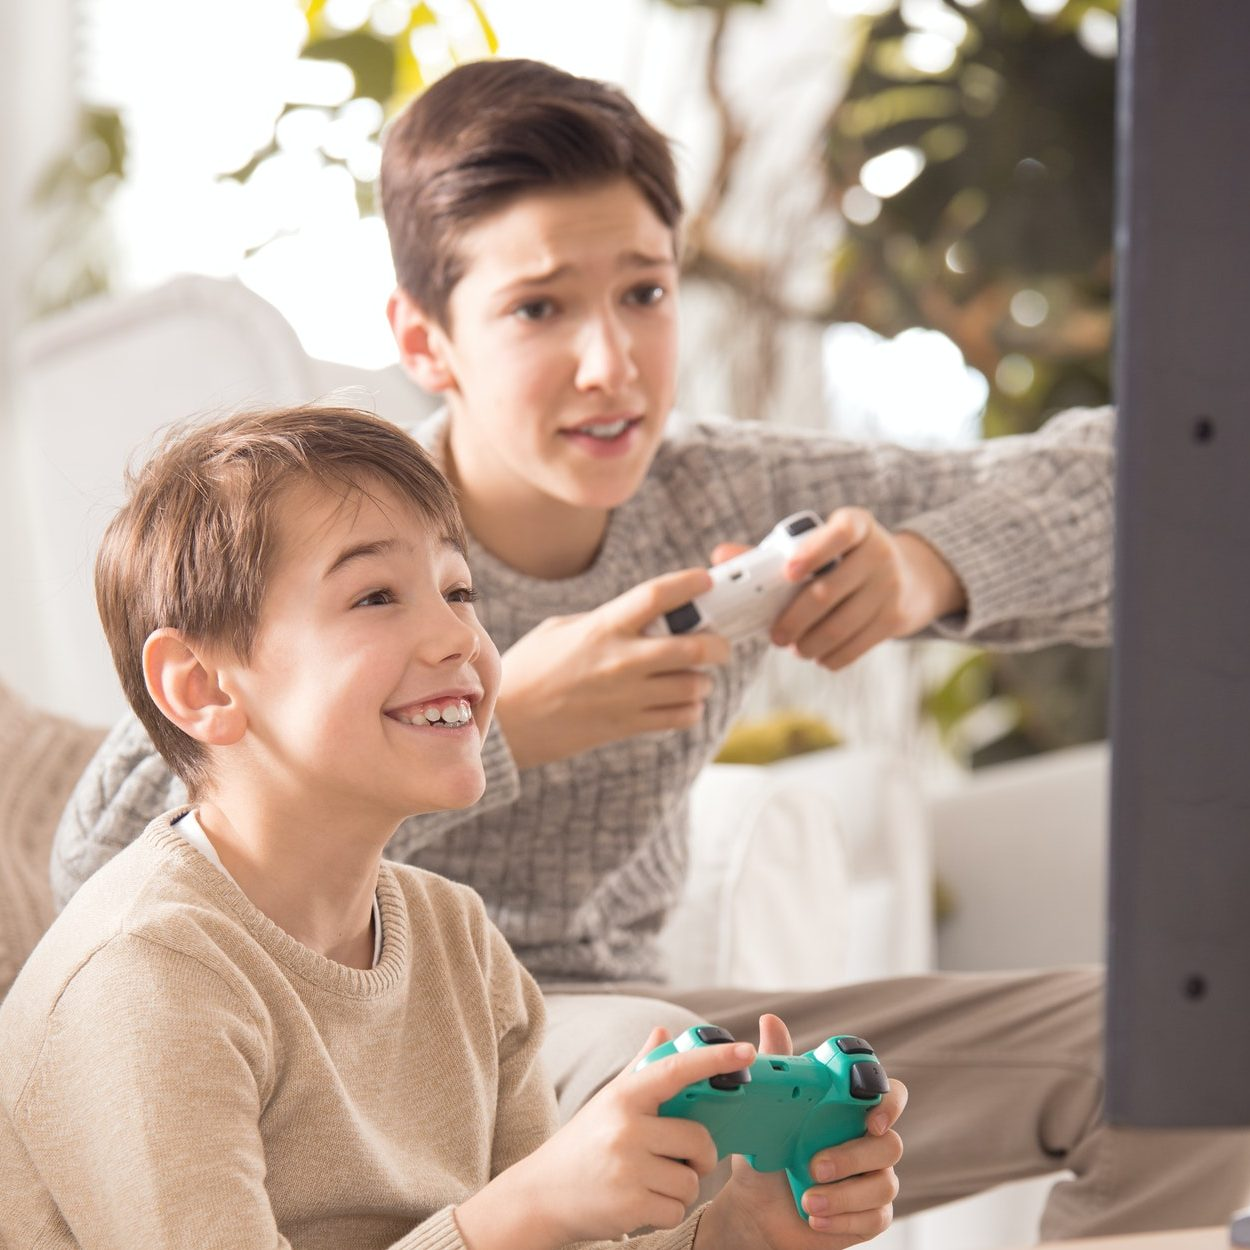 Brothers playing on playstation